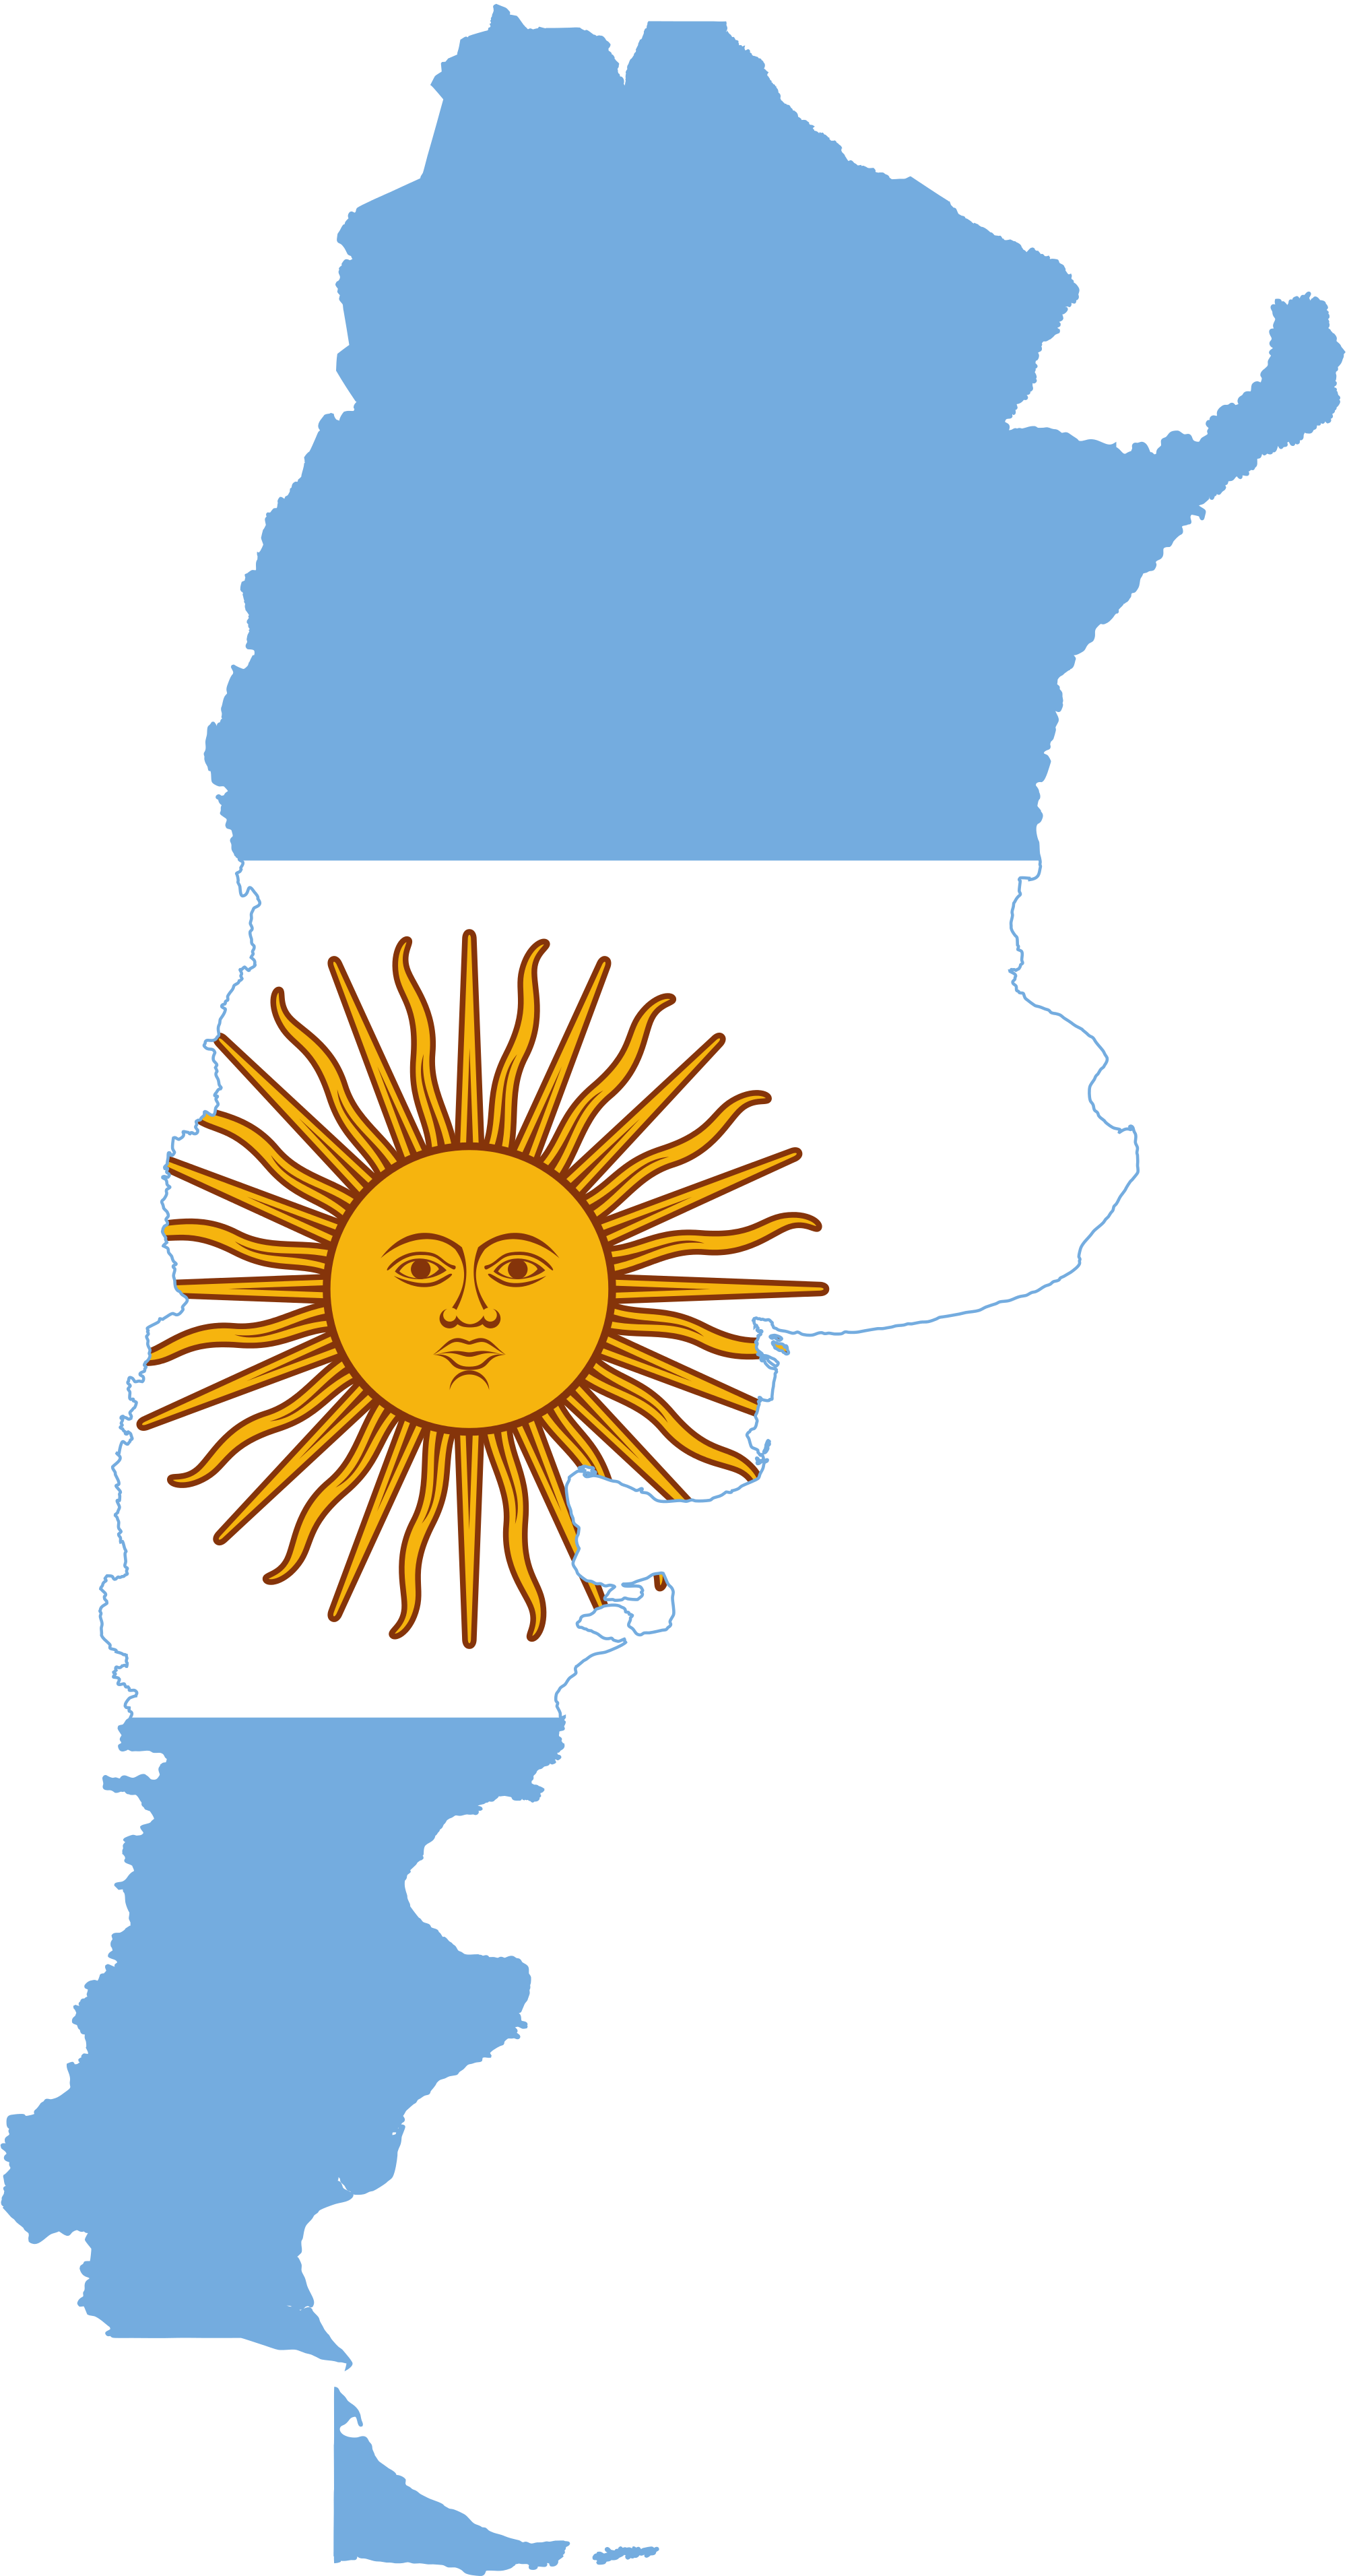 Argentinian Flag On Map - ClipArt Best